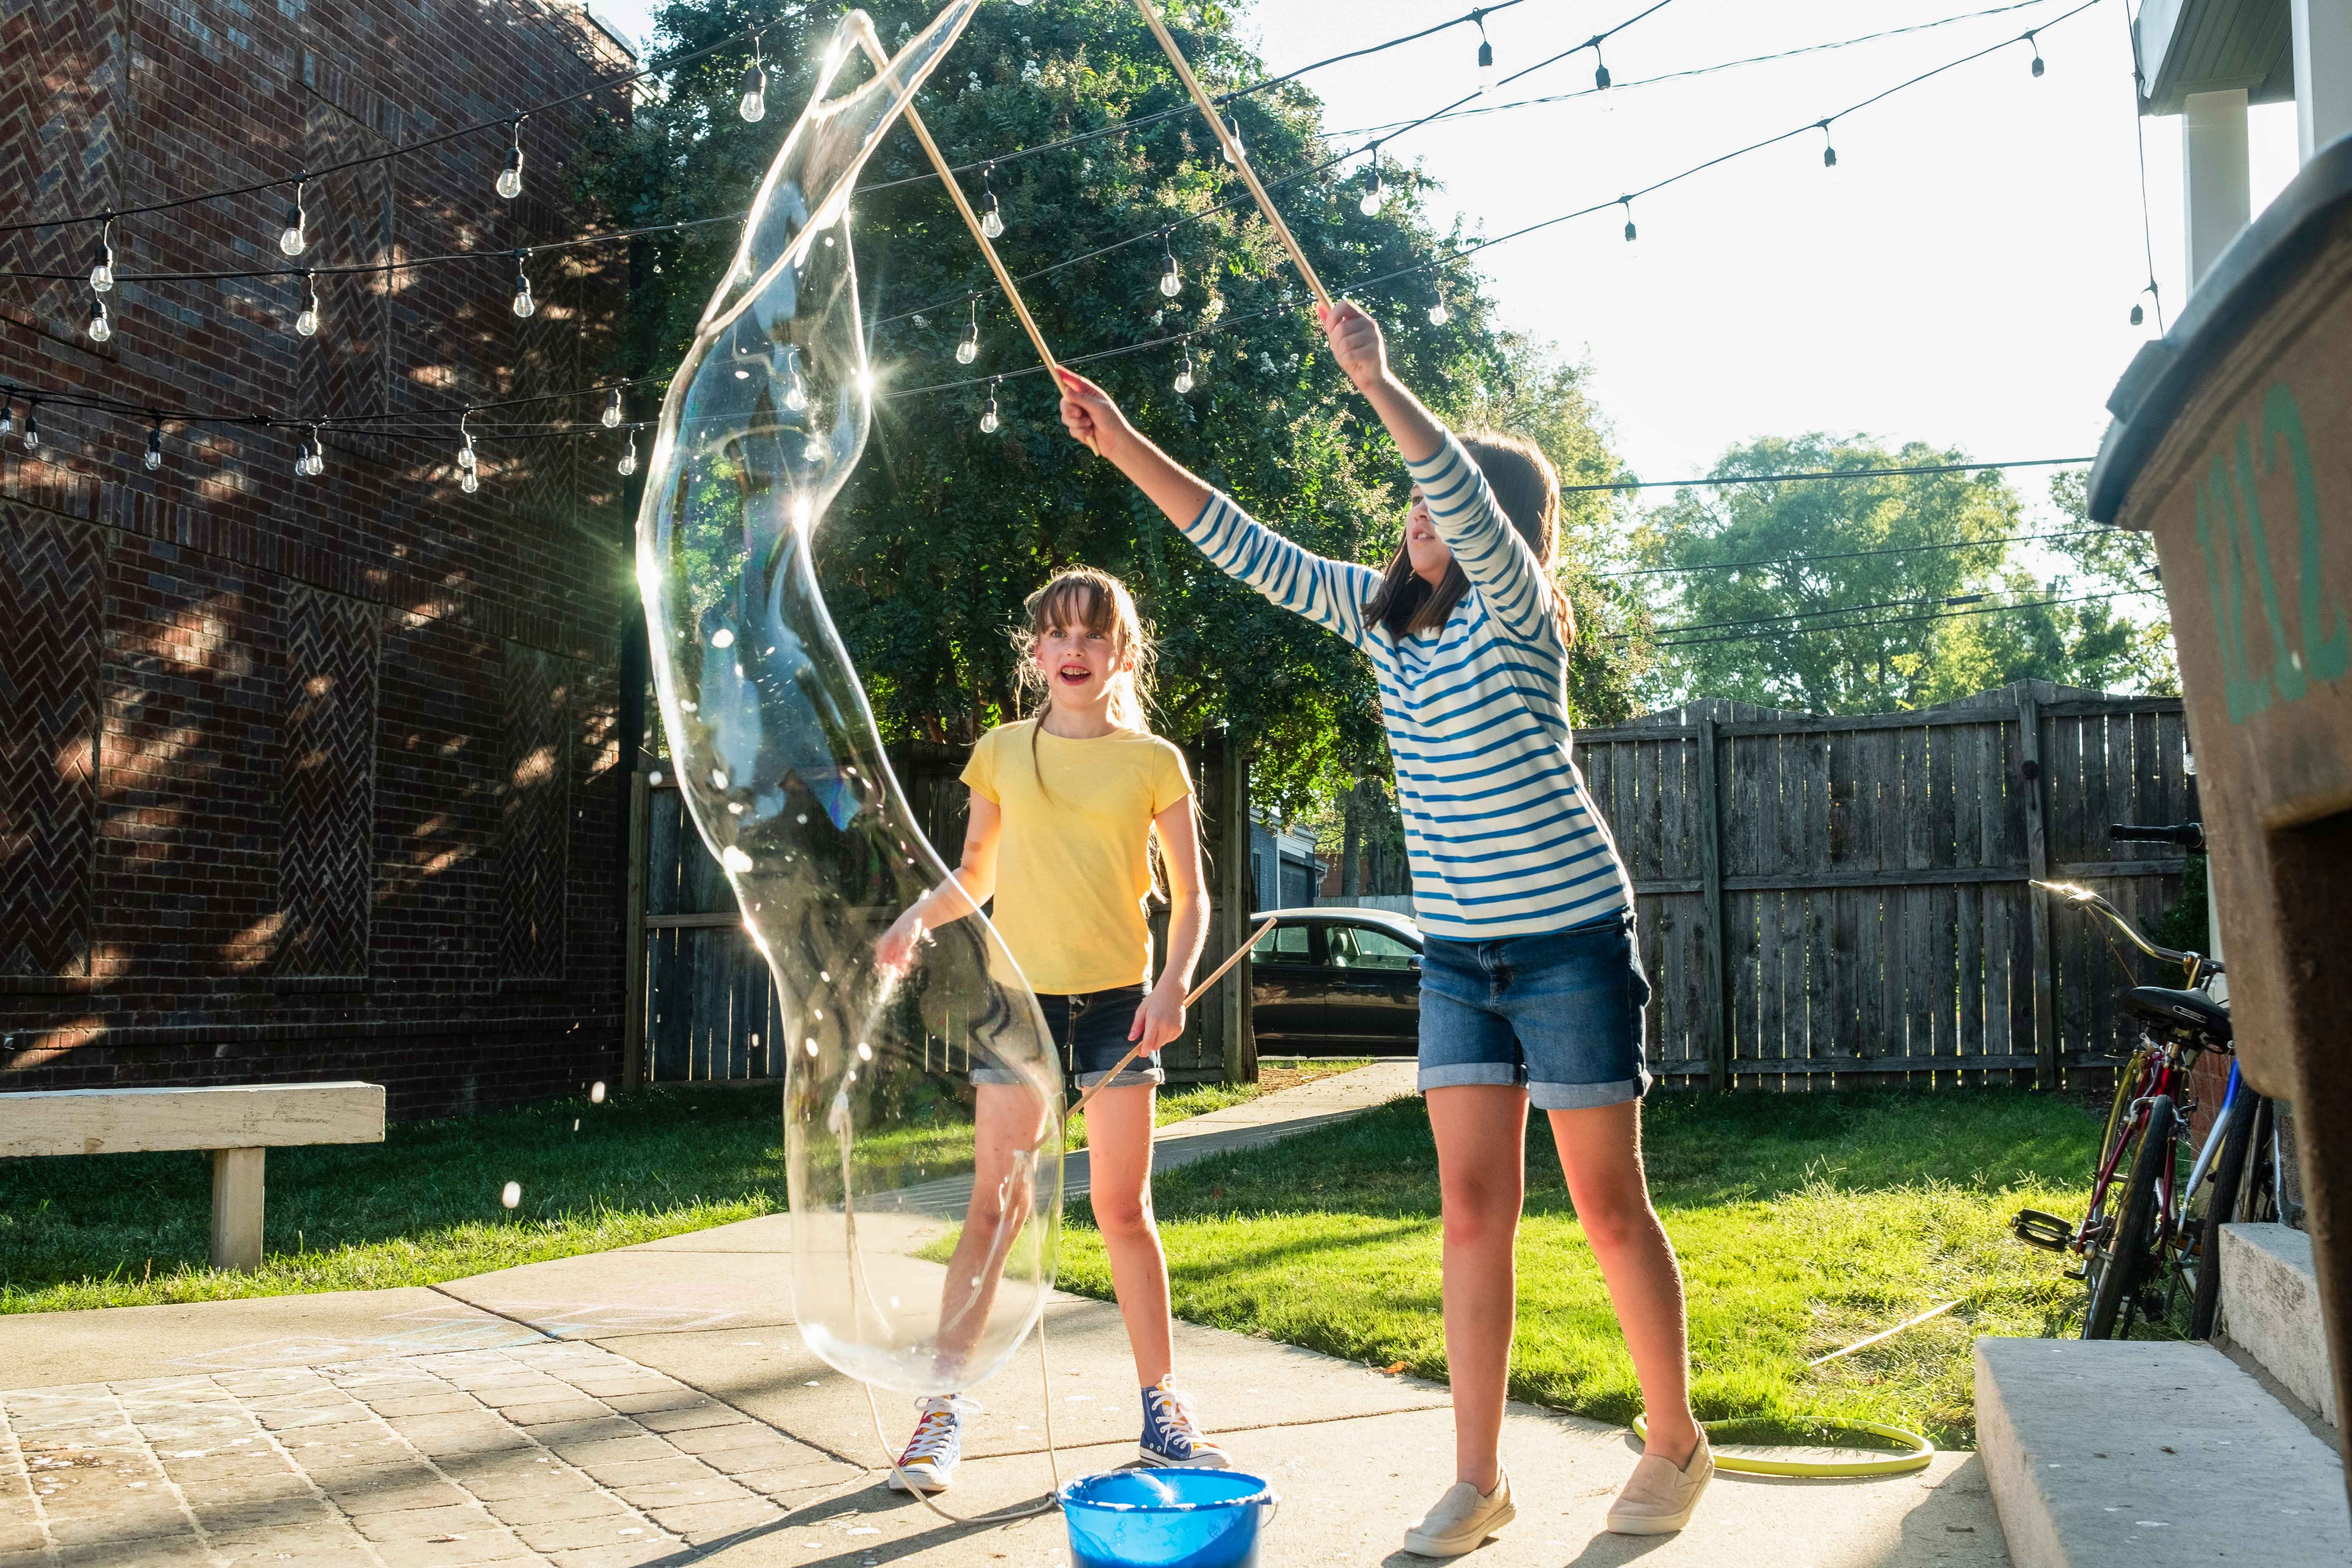 Two girls playing outside making bubbles with a soap wand